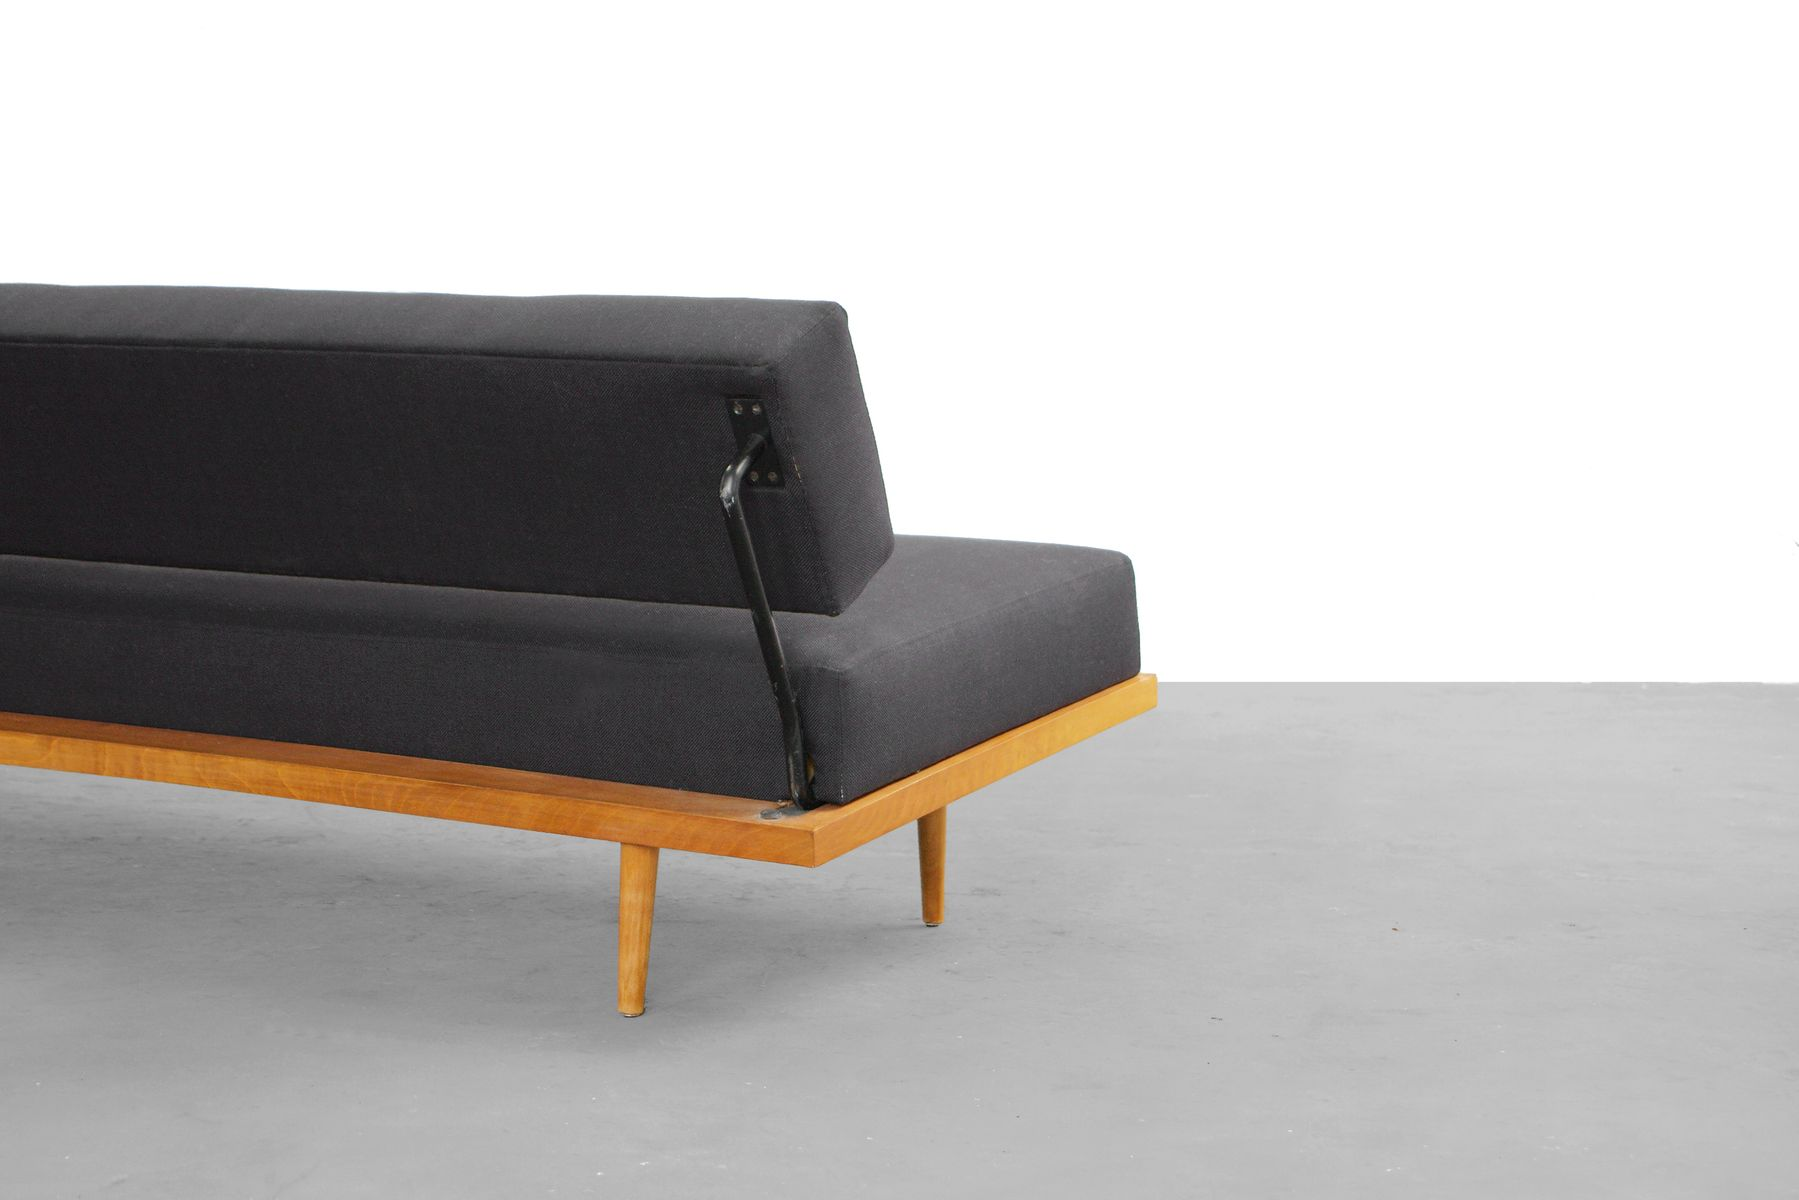 ausklappbares sofa mit buchen gestell von florence knoll bassett f r knoll international 1958. Black Bedroom Furniture Sets. Home Design Ideas